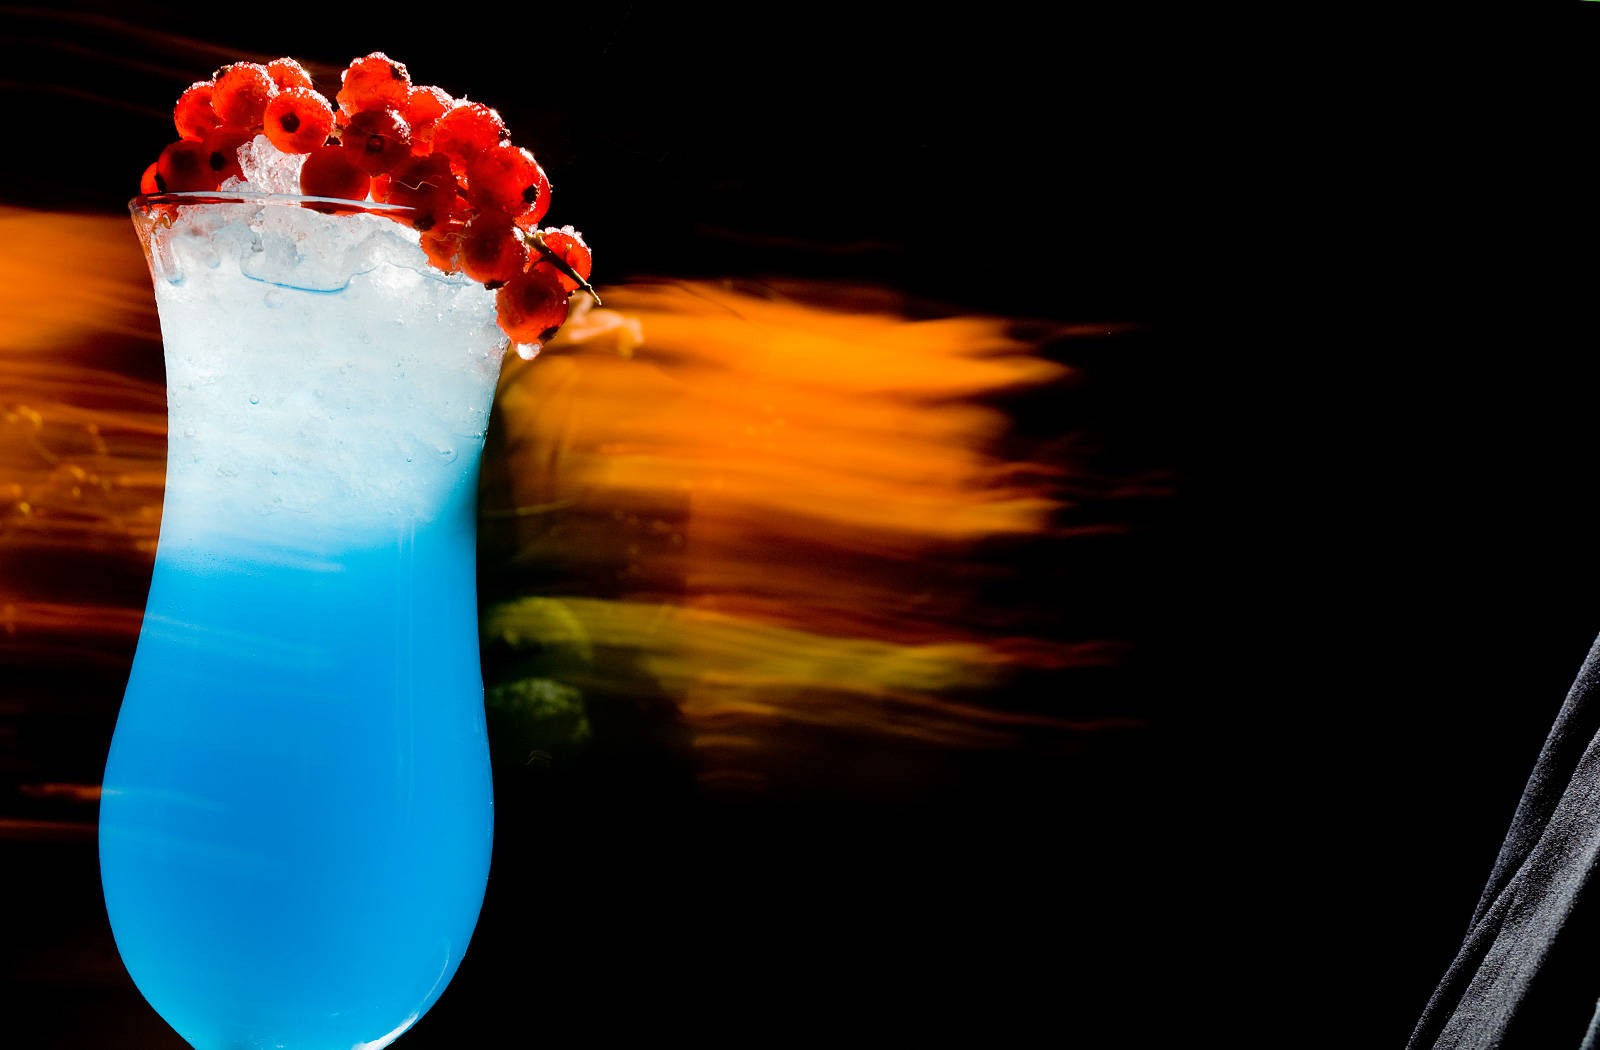 blue-drinks-0433.jpg